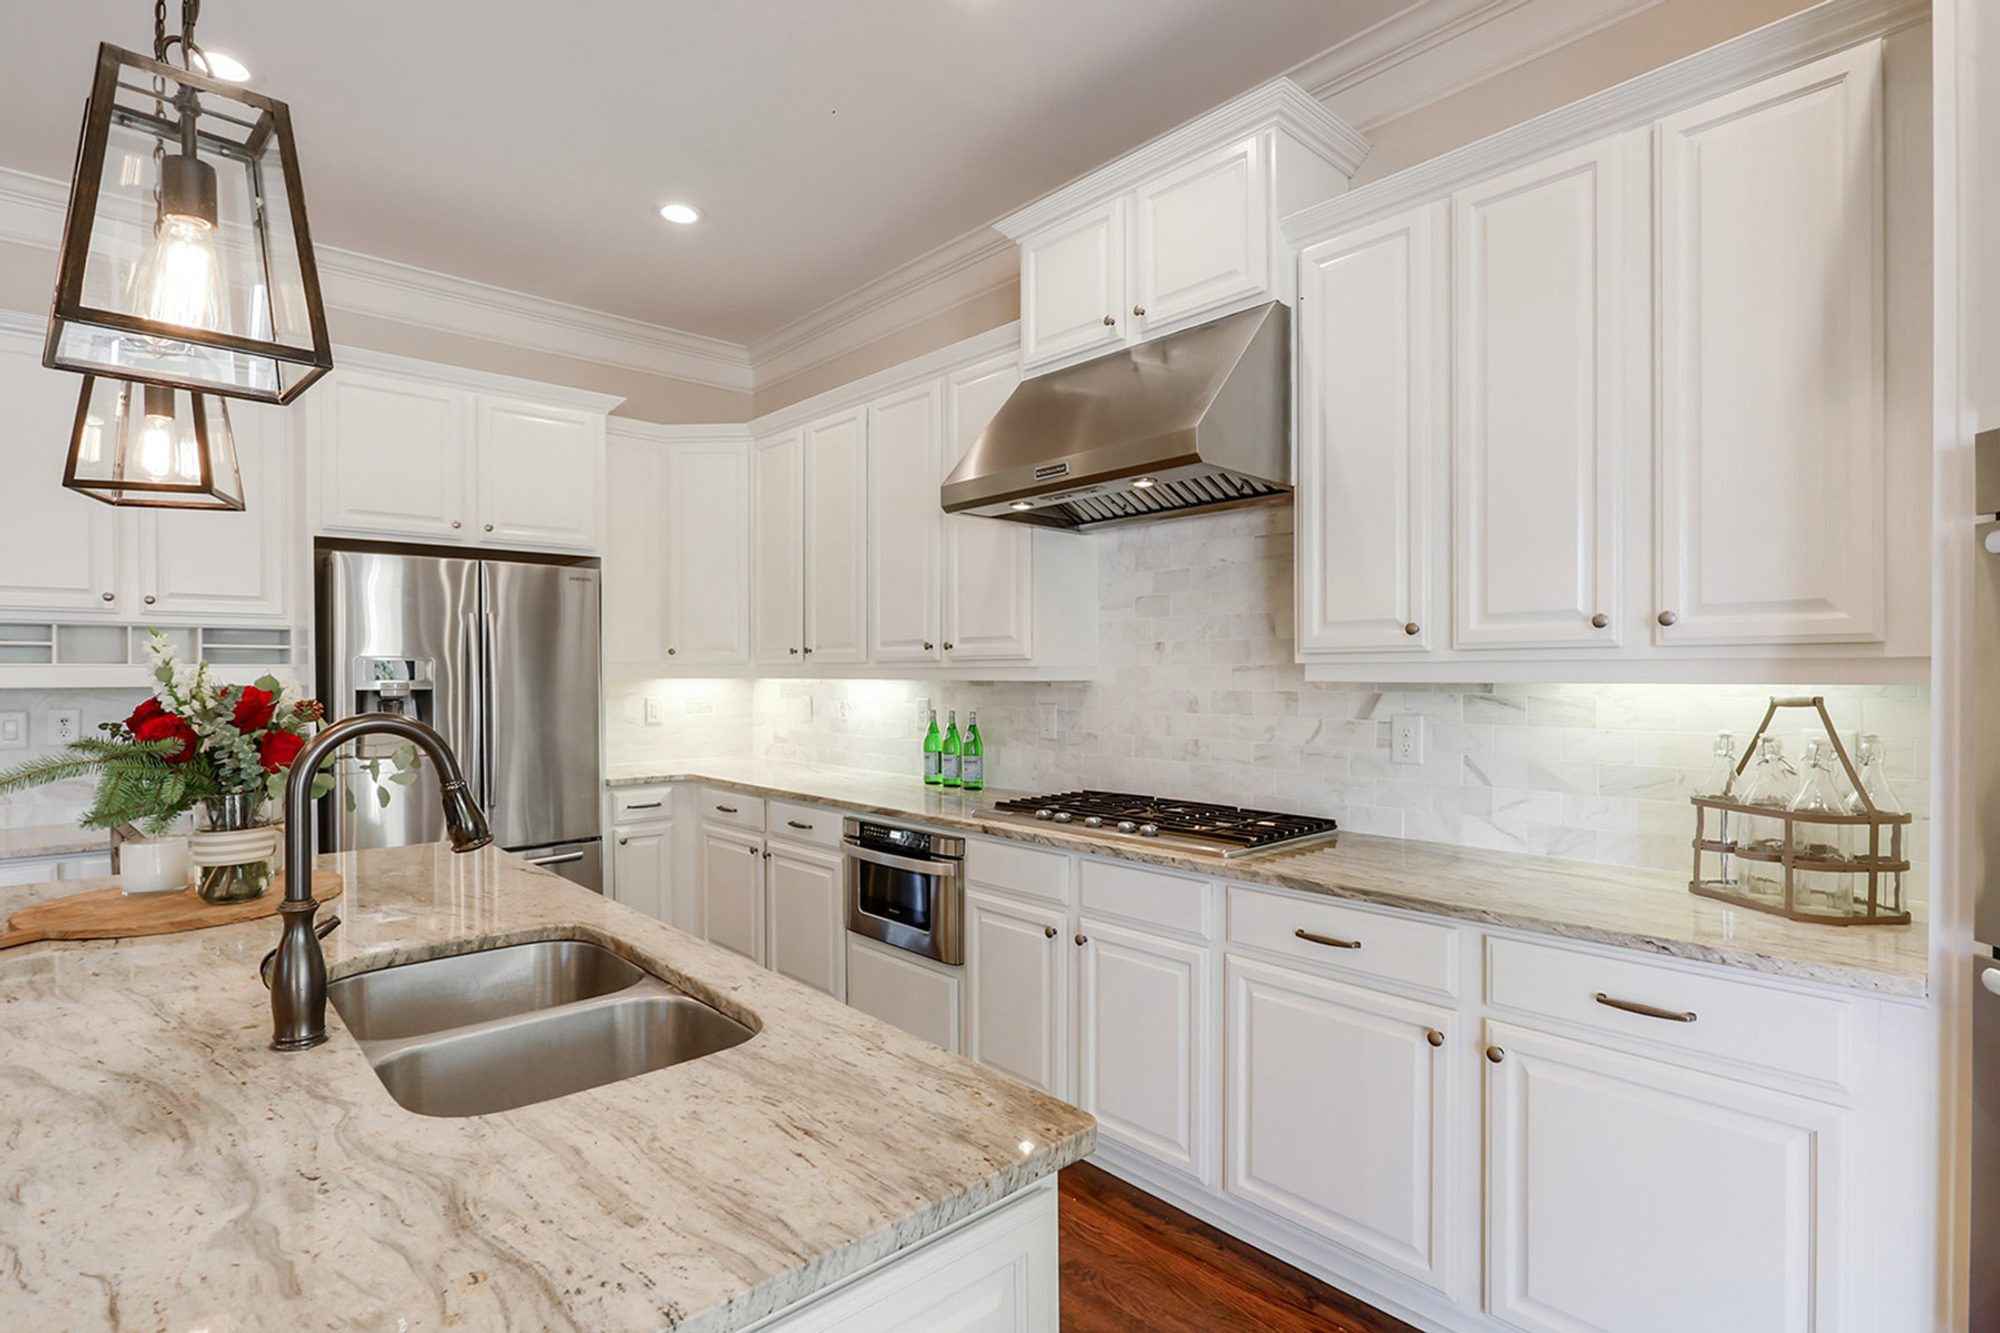 White marble tile kitchen backsplash with unsanded bright white grout.